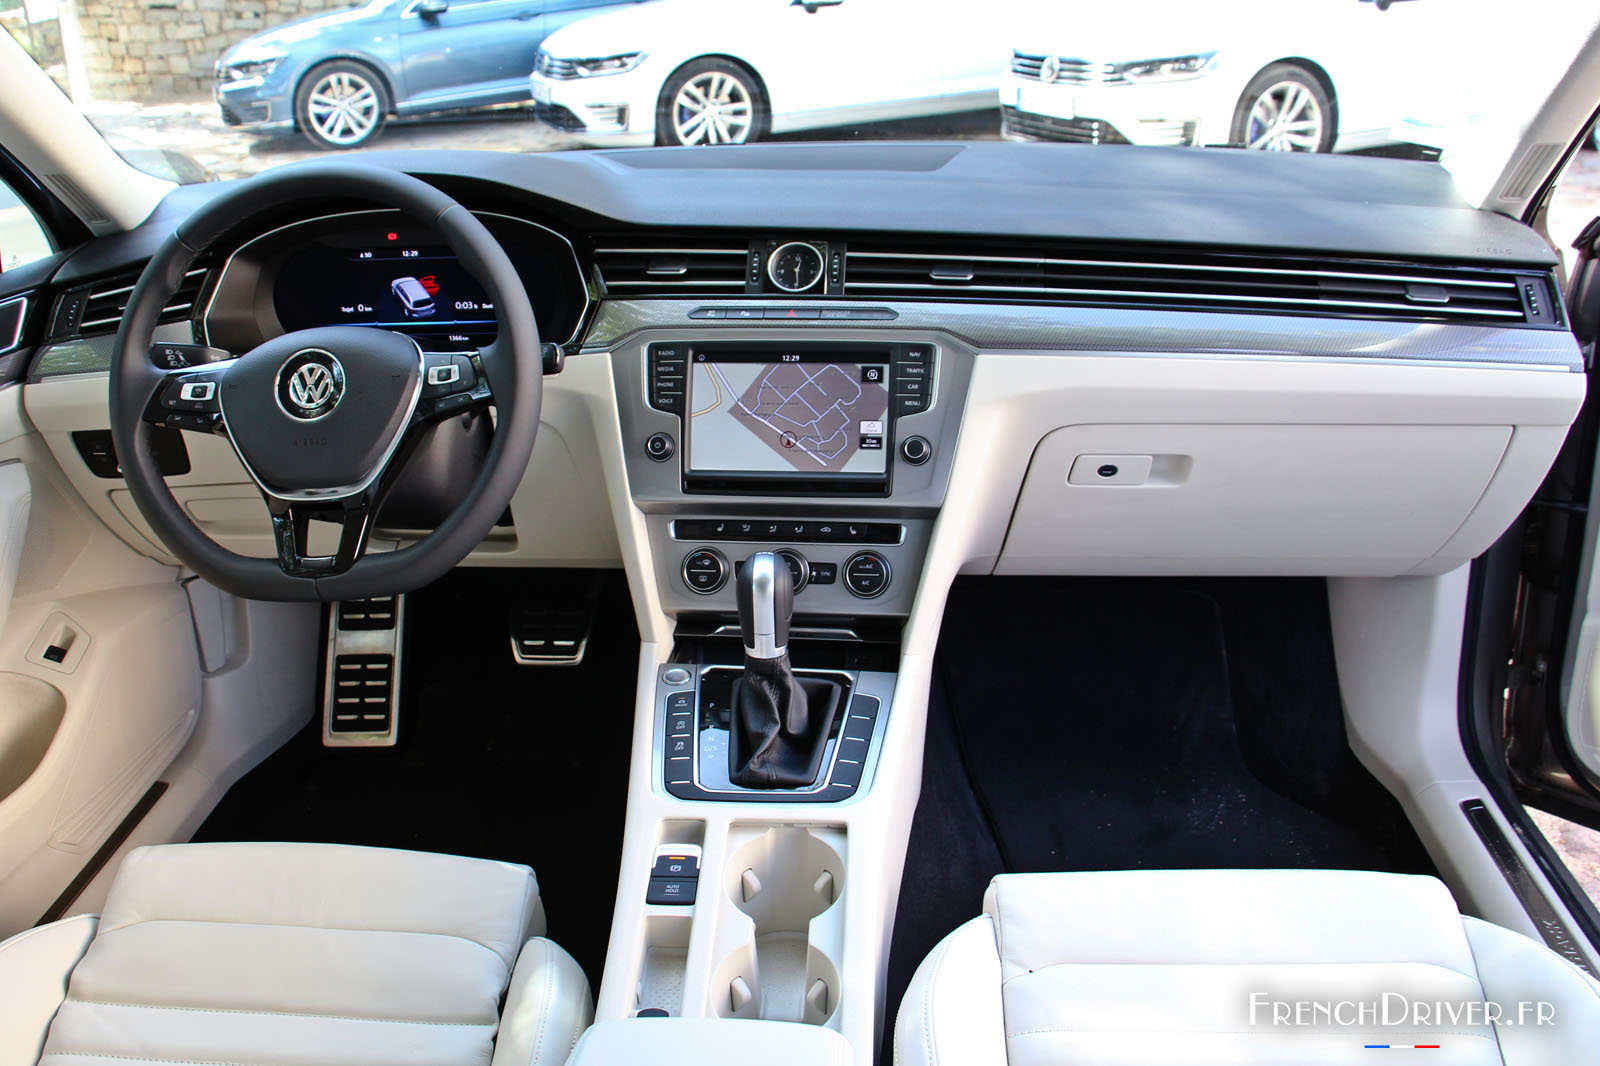 essai des volkswagen passat gte et alltrack une histoire de temp rament french driver. Black Bedroom Furniture Sets. Home Design Ideas